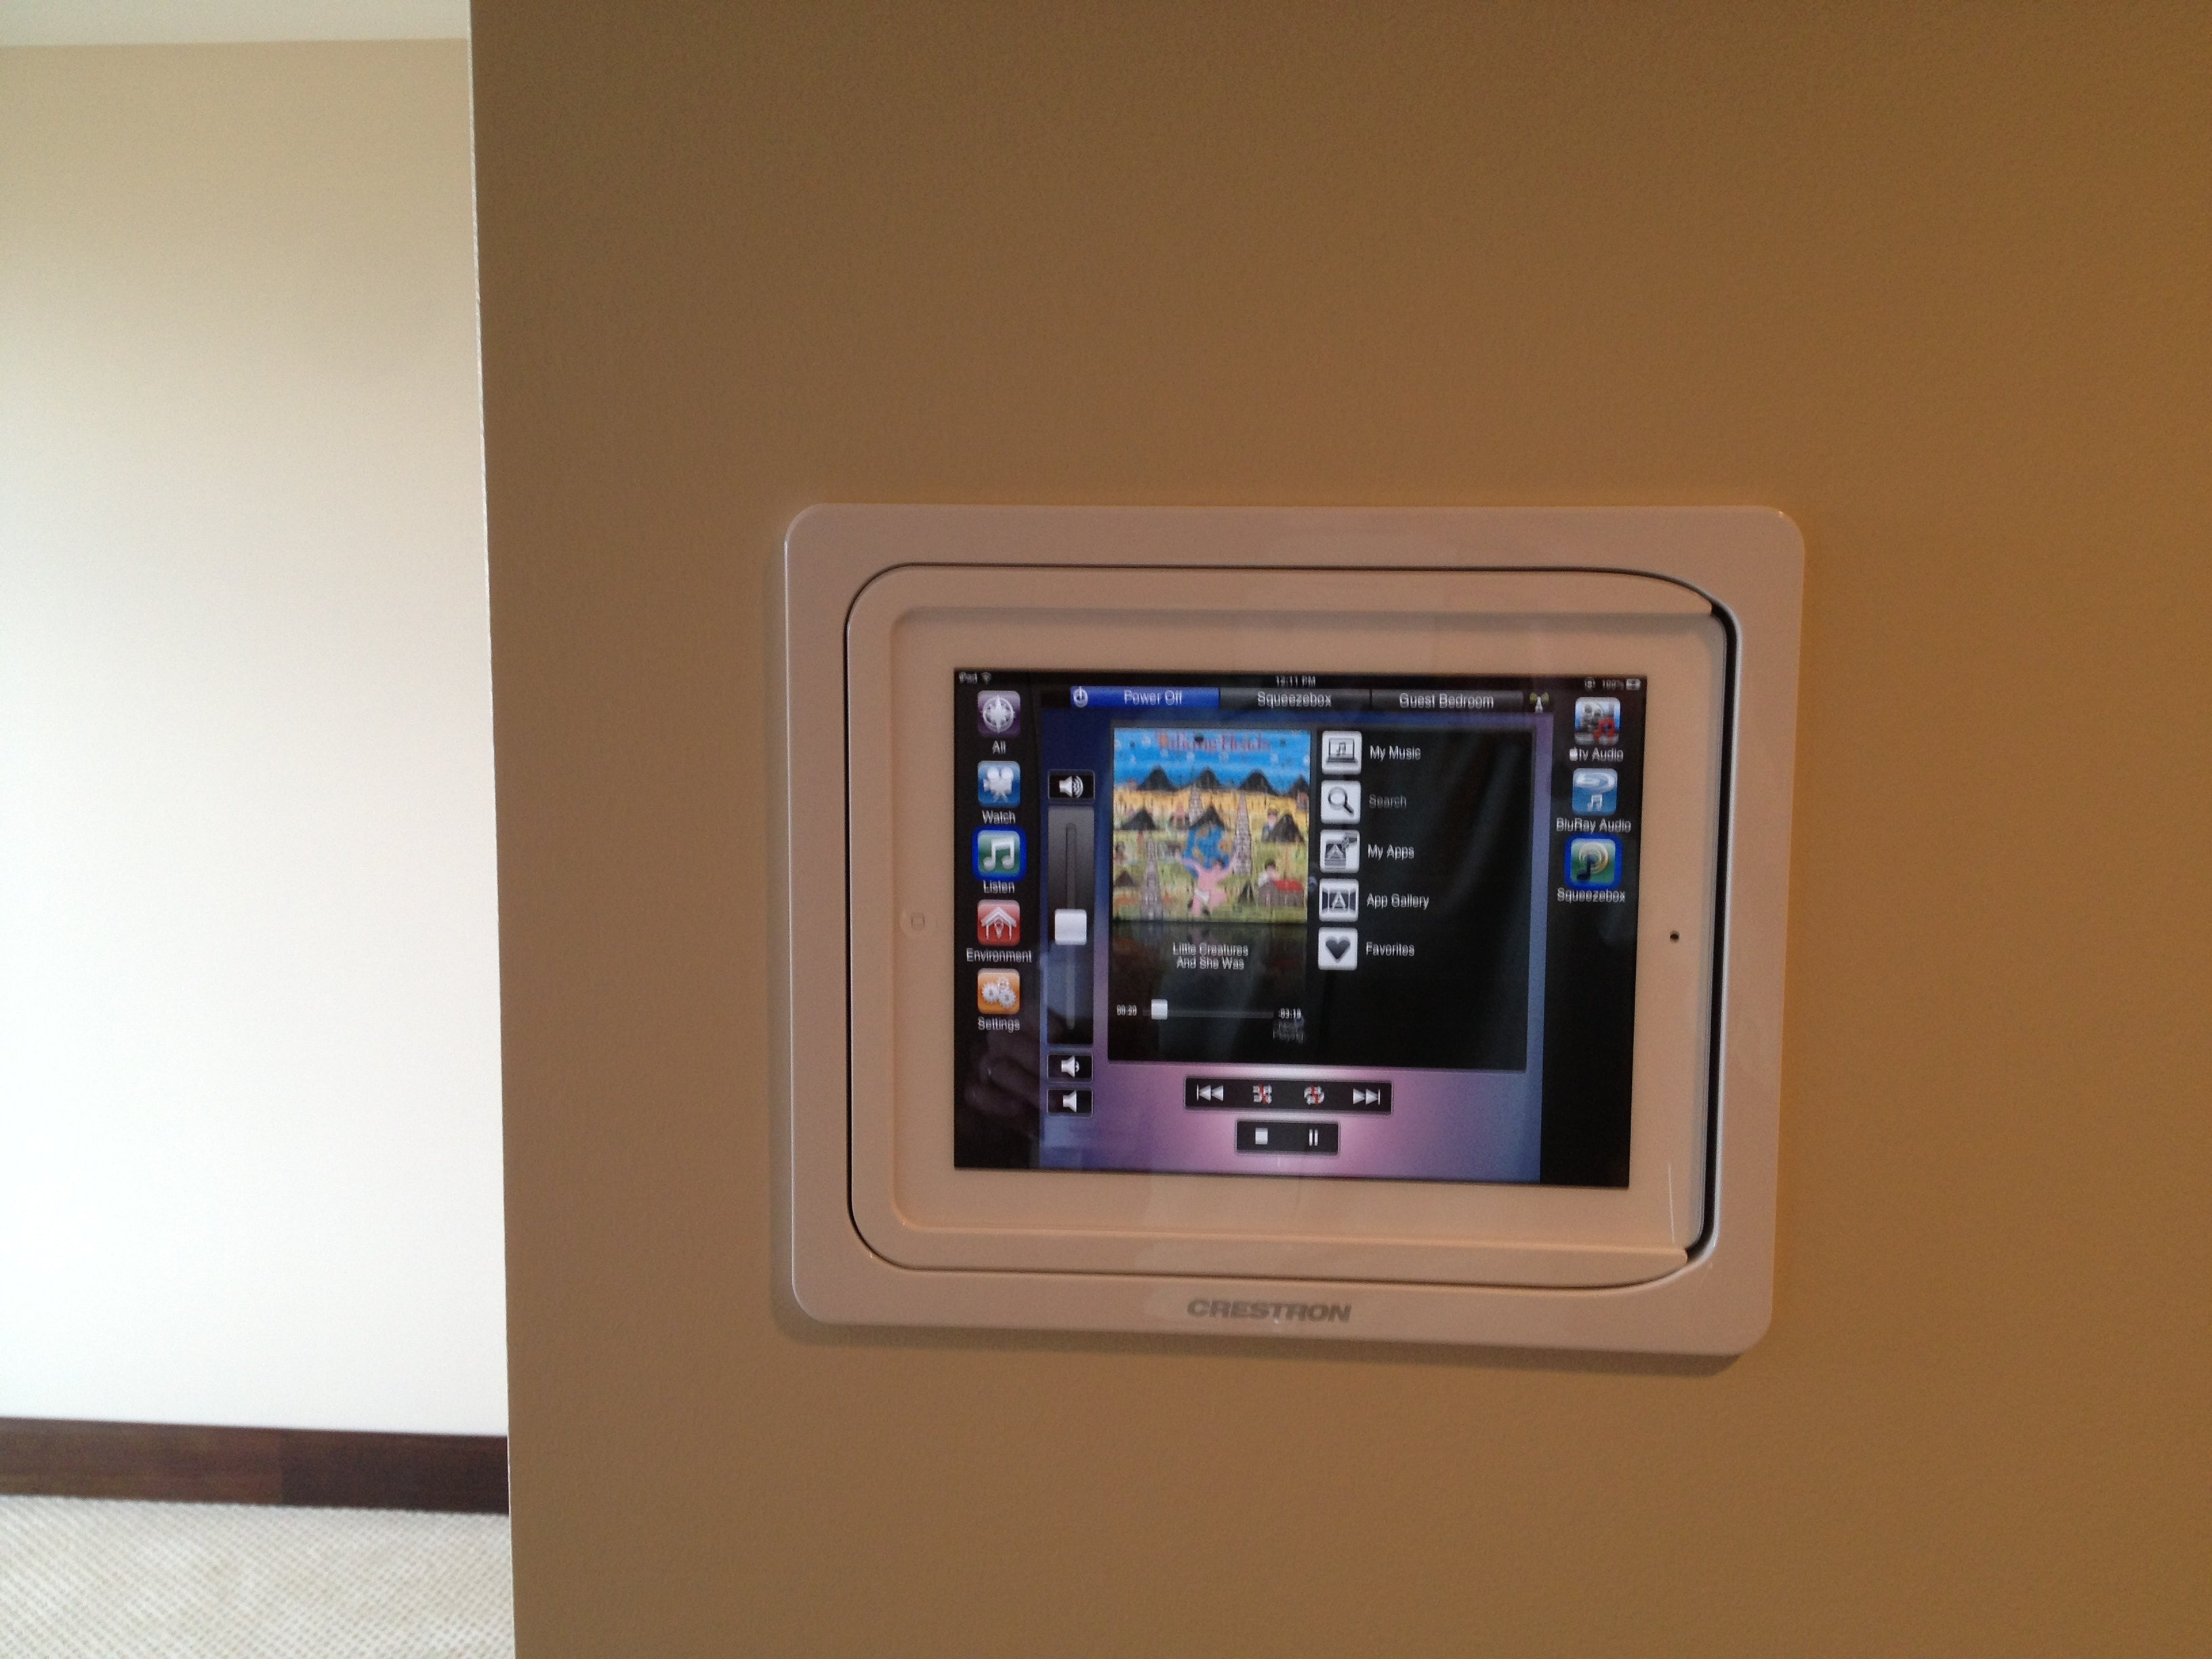 crestron inwall ipad dock not really sure on price or where to get this one lists it at 370